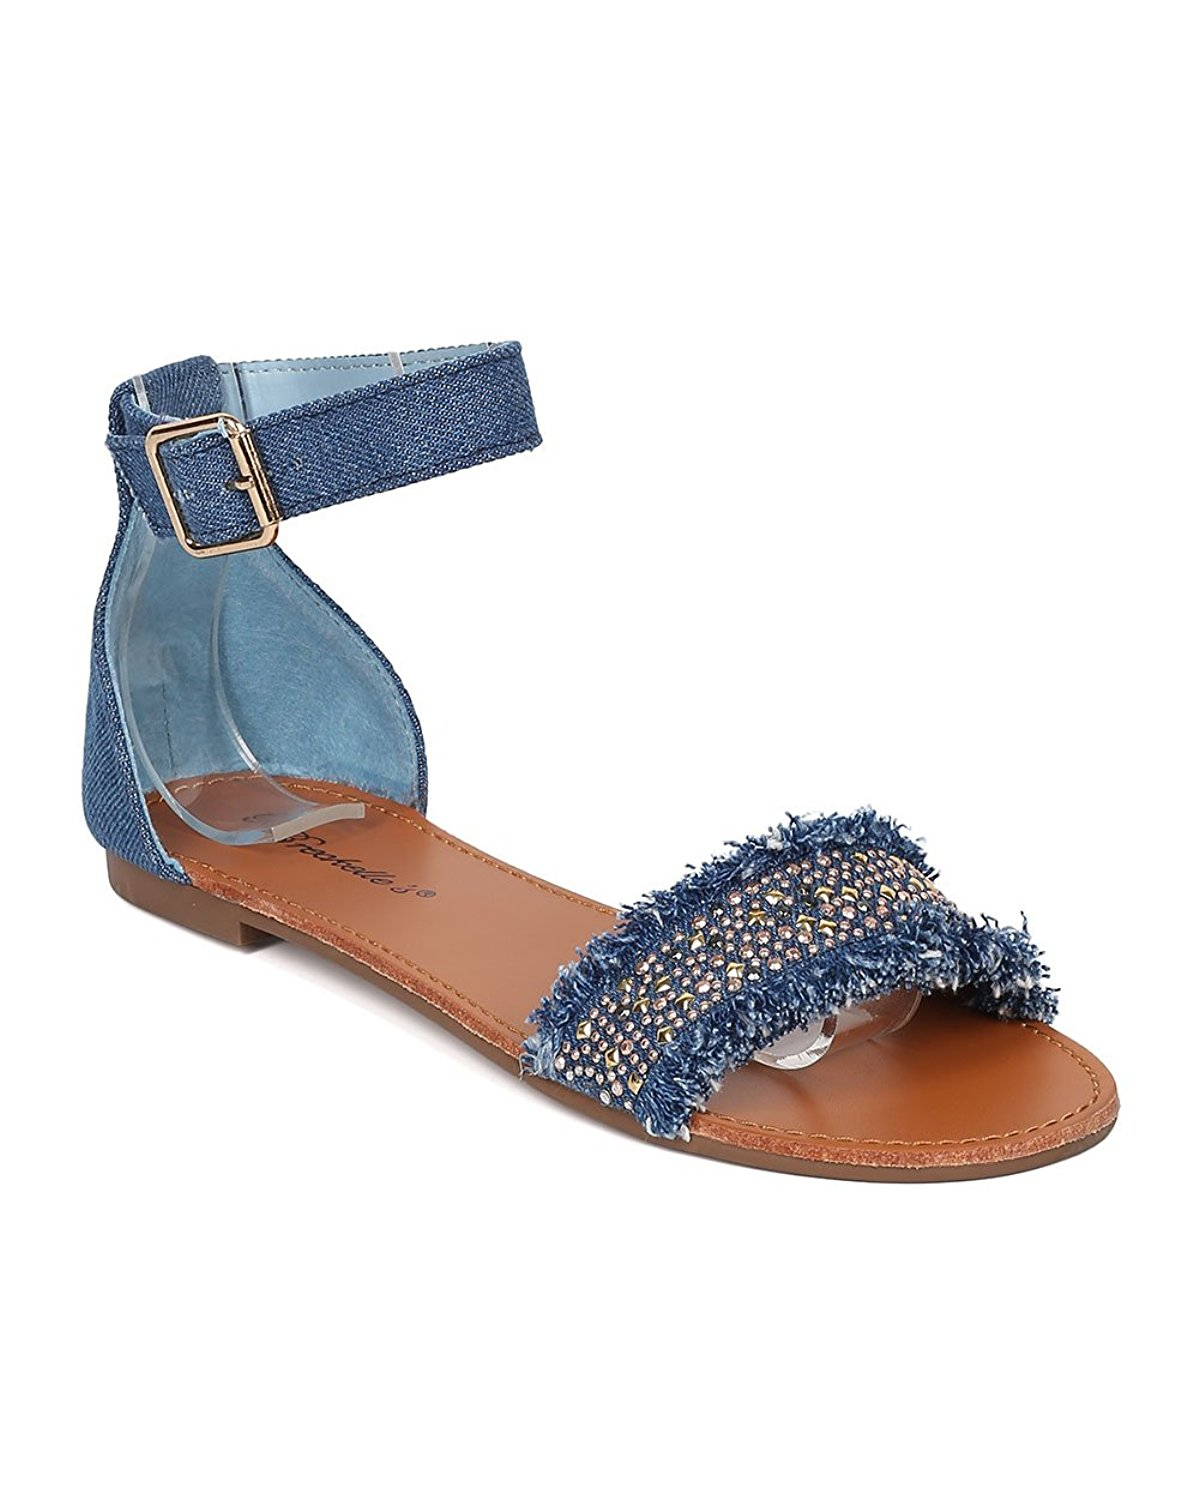 f756467c349 Get Quotations · Breckelle s Women Beaded Flat Sandal - Ankle Strap Sandal  - Comfortable Everyday Casual on The Go